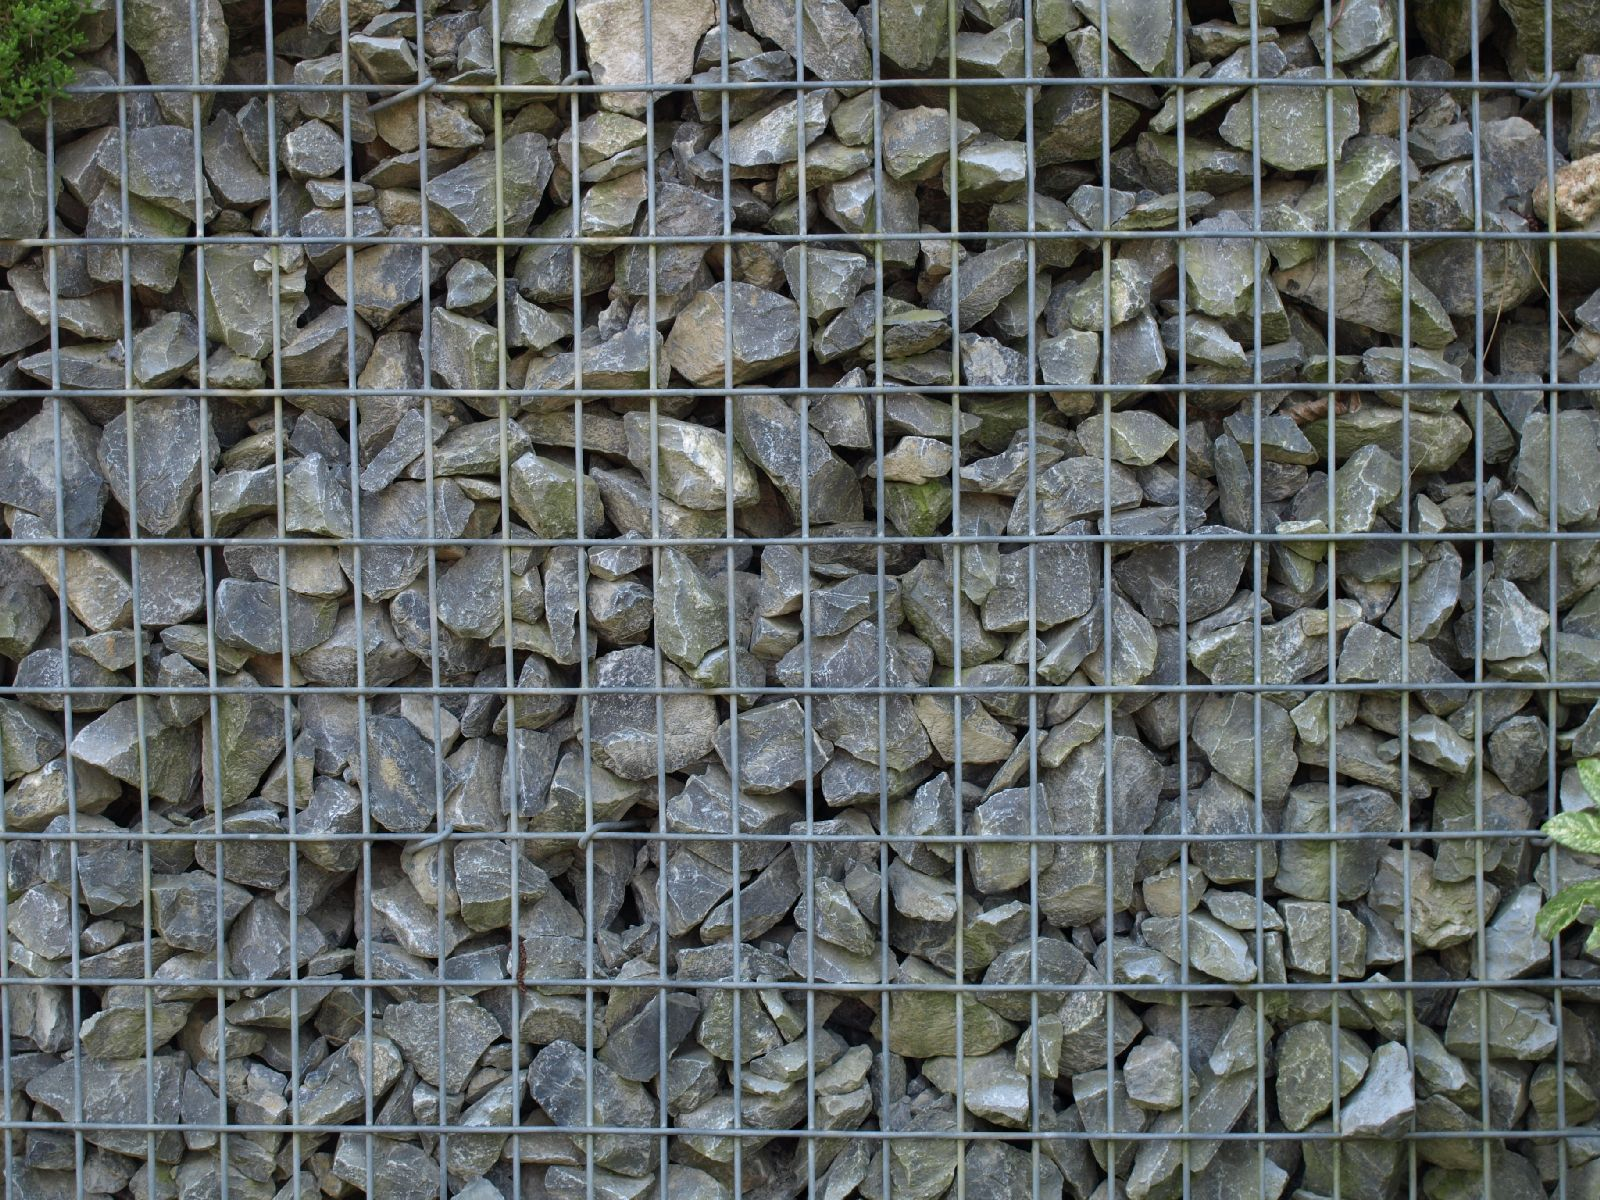 Stone_Texture_A_P4221653